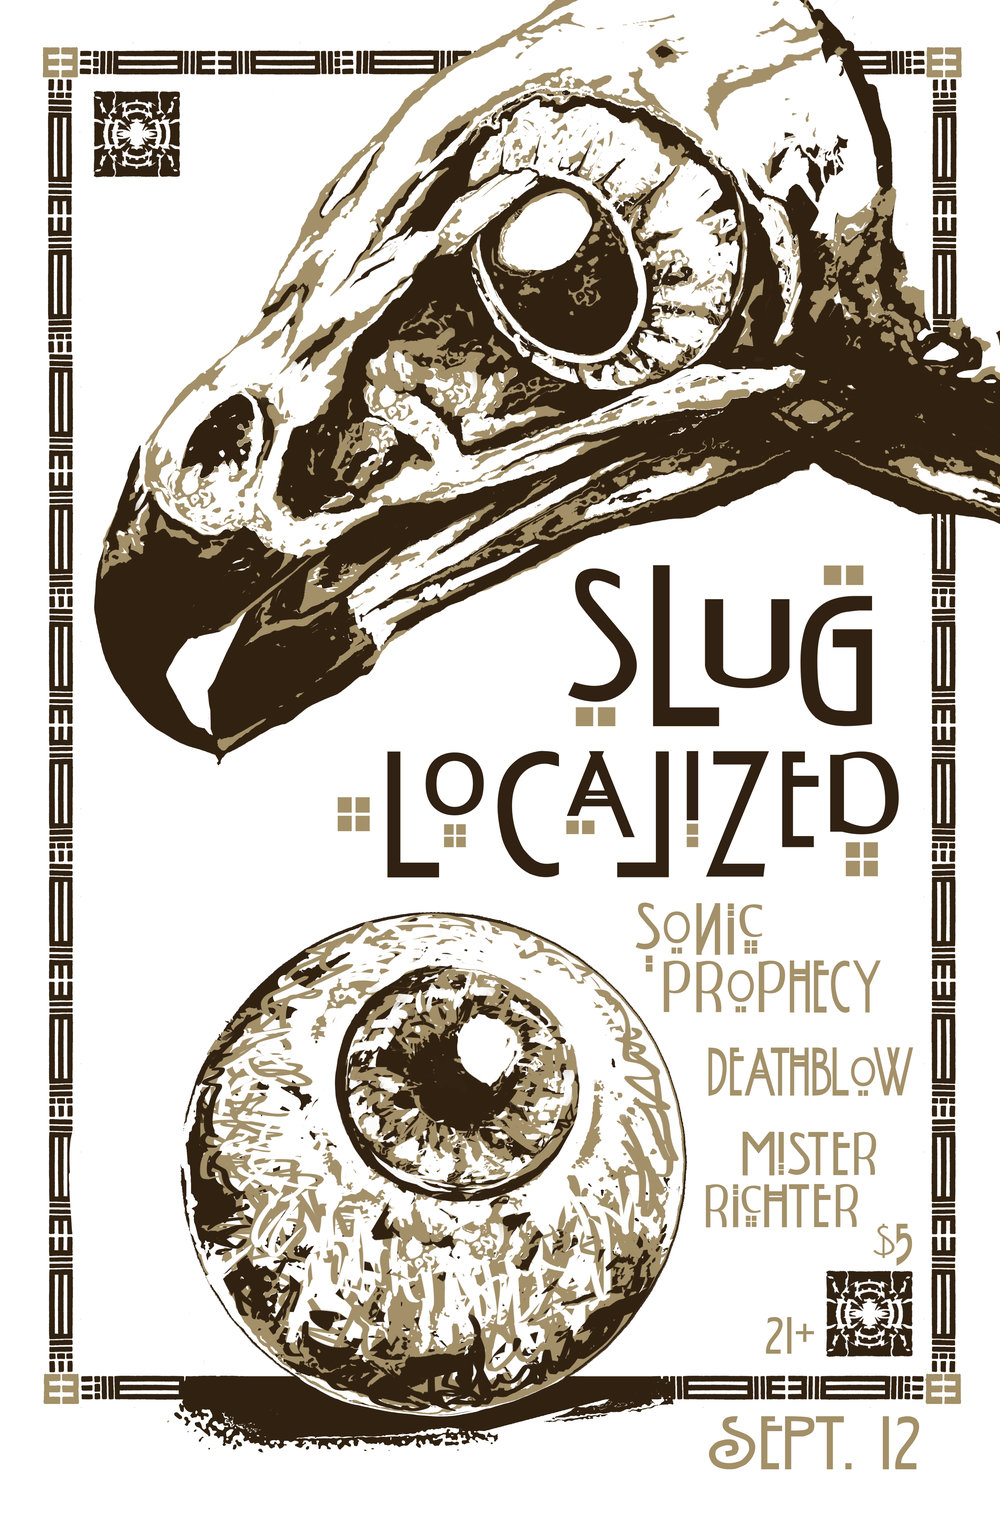 SLUG LOCALIZED